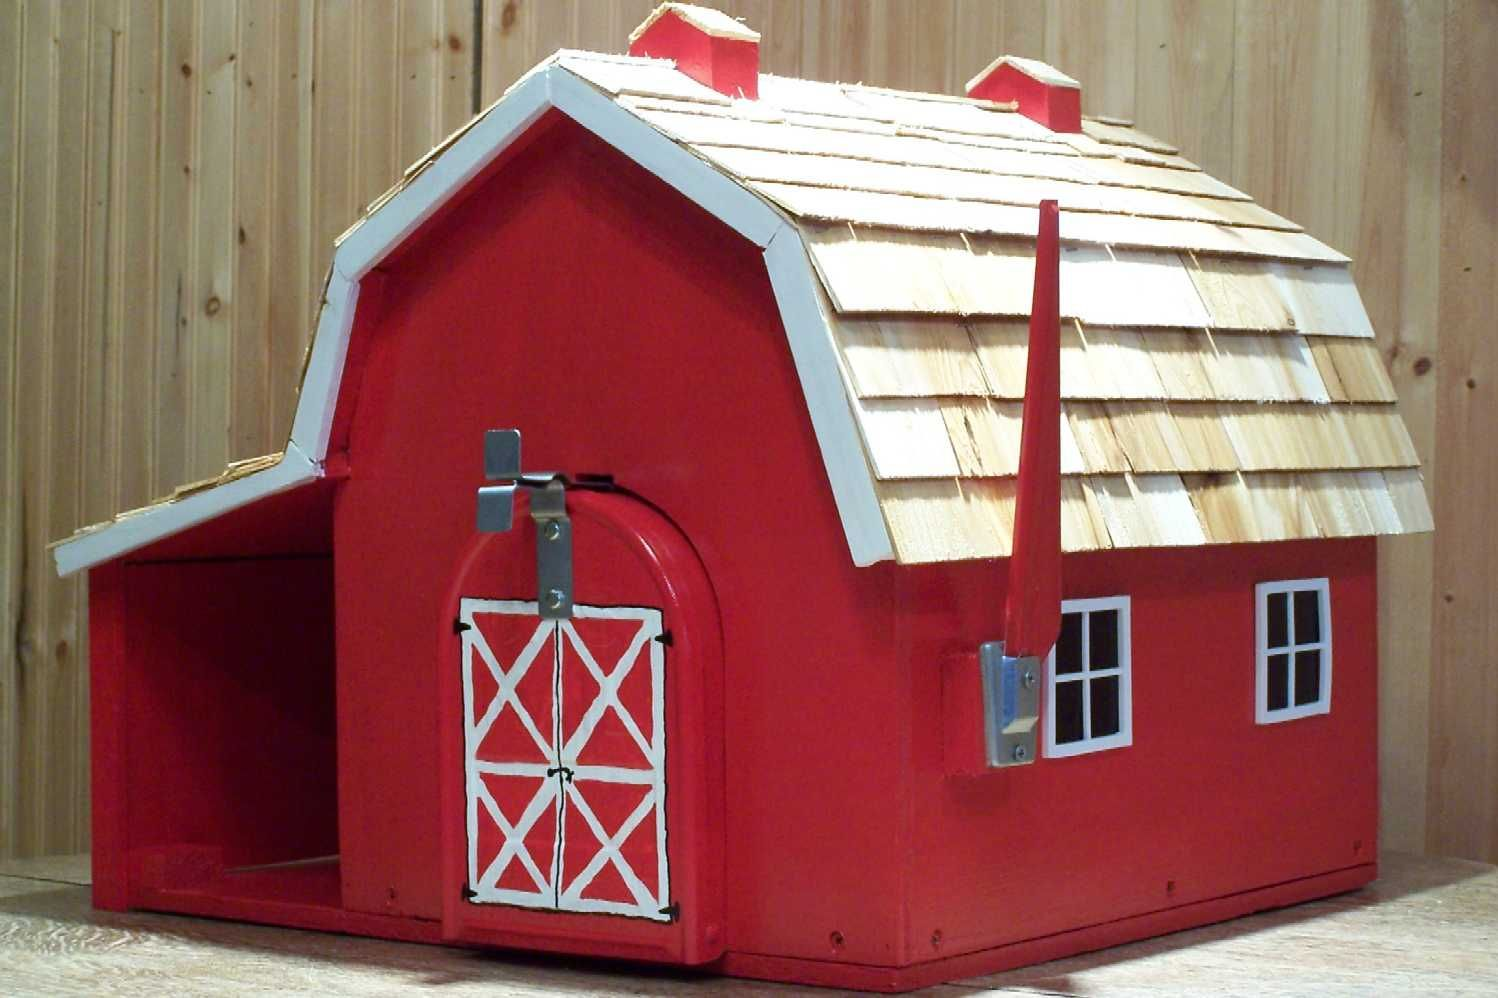 Building Mailboxes House Mailboxes Barn Mailboxes School House Mailbox House Mailbox Barn Mailbox School House Mailboxe Wooden Barn Residential Mailboxes House